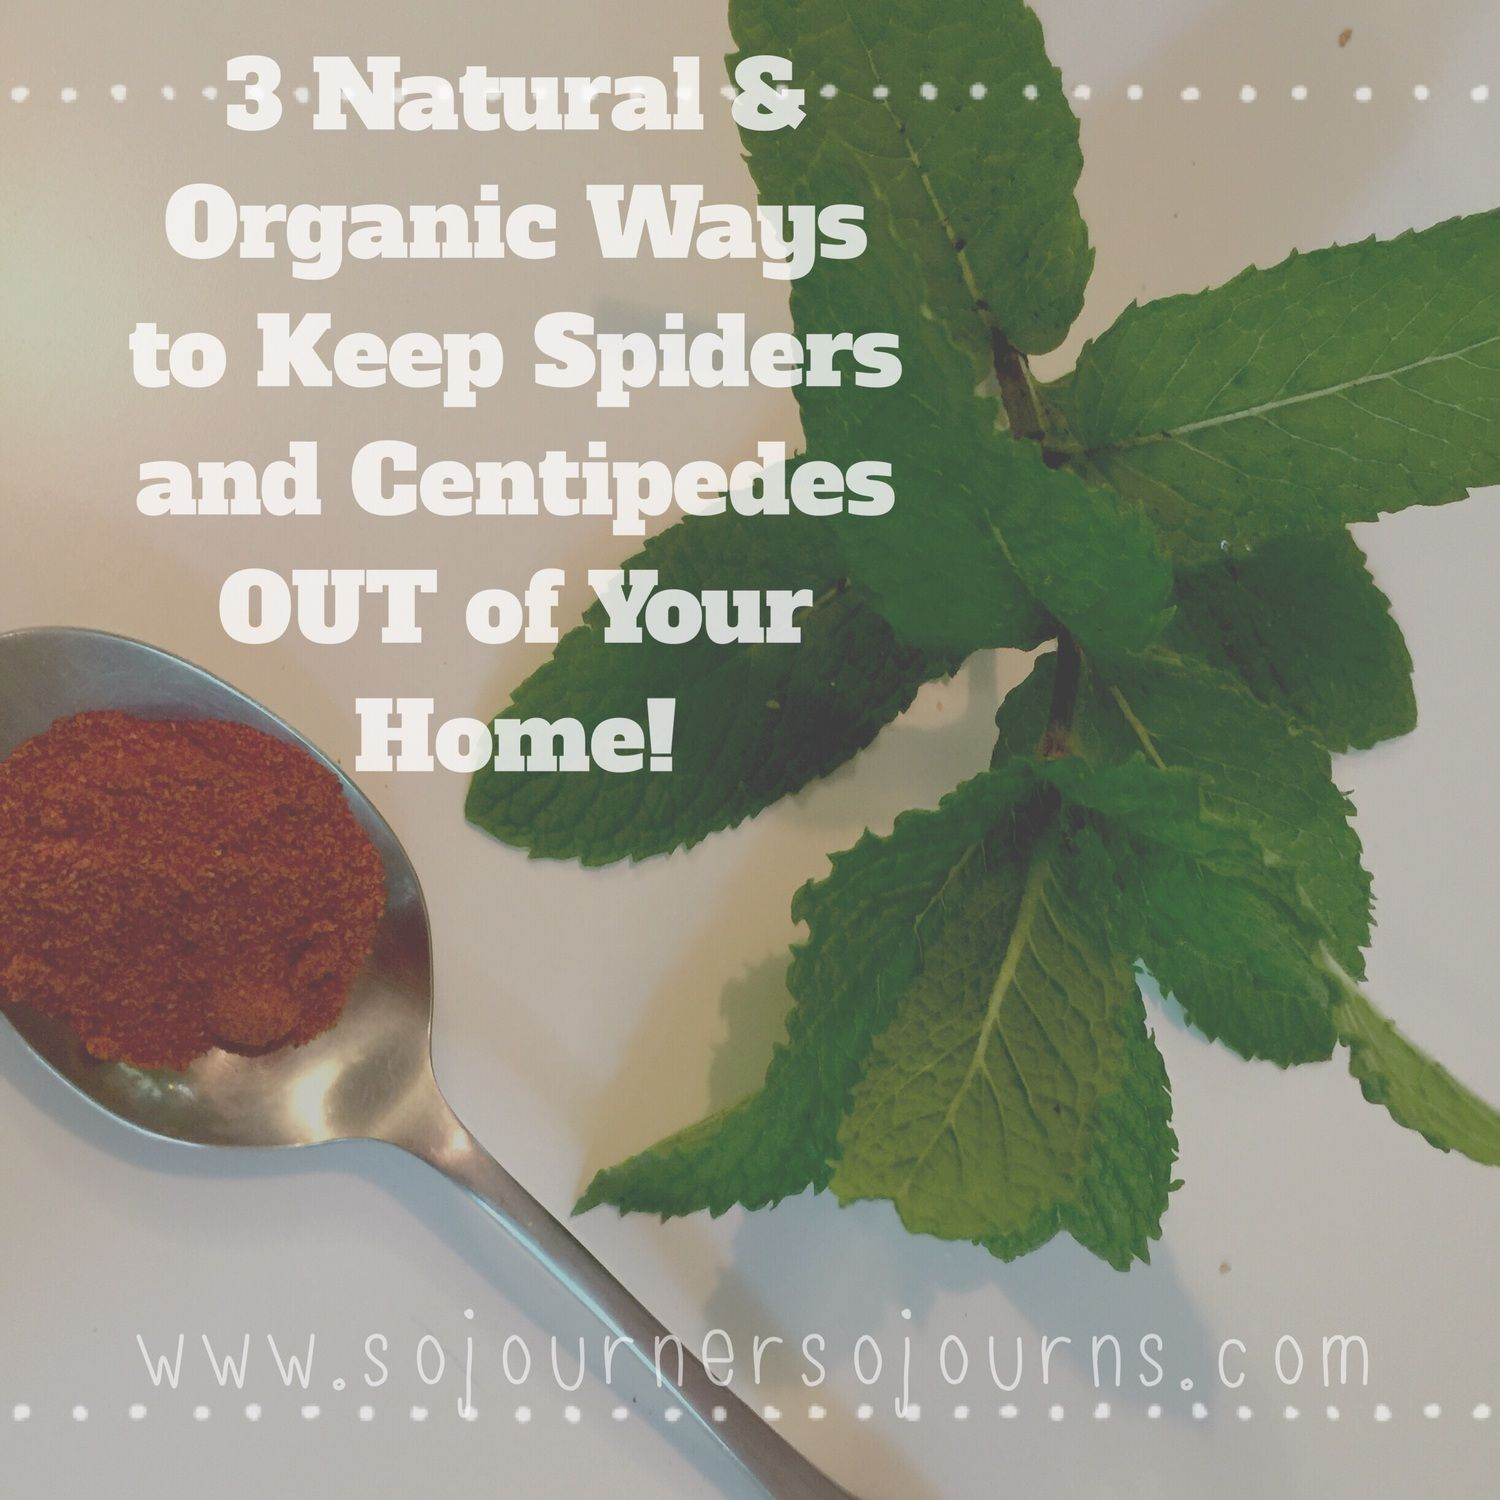 3 Natural and Organic Ways to Keep Spiders and Centipedes